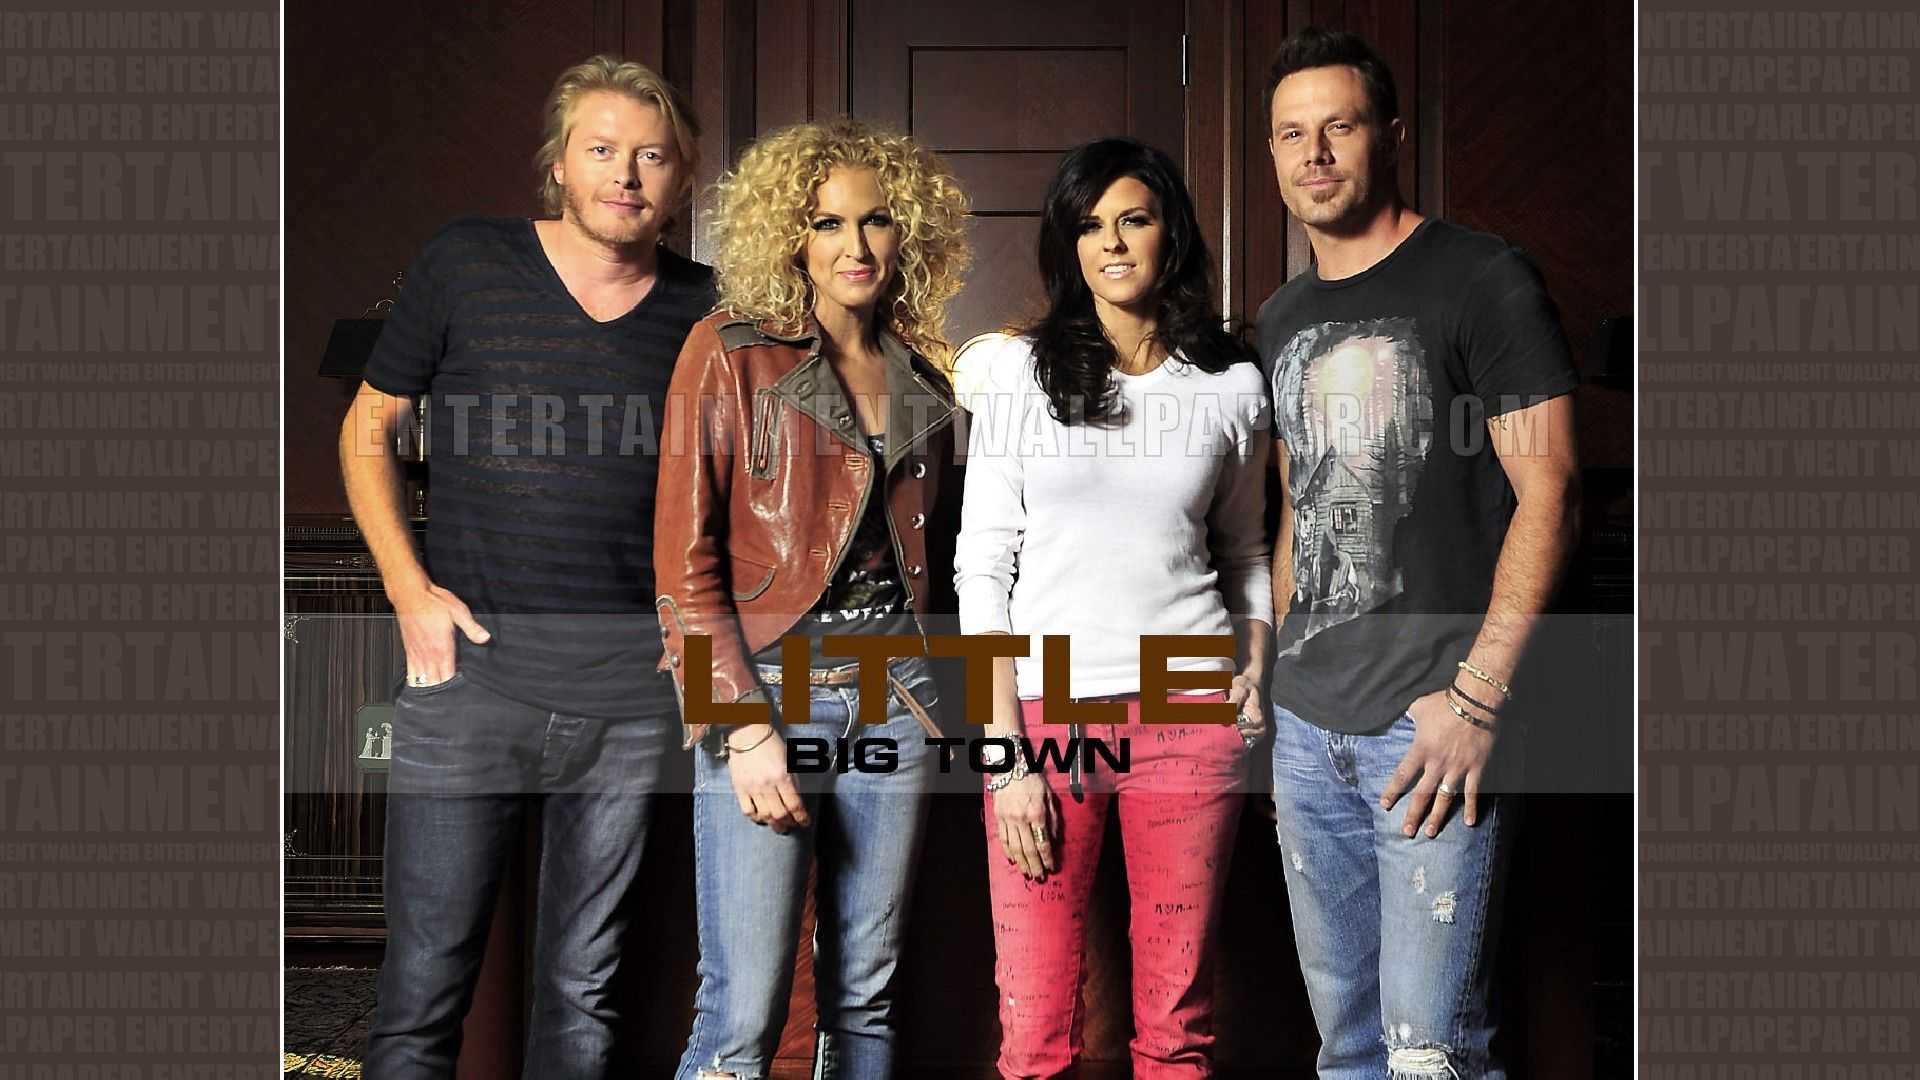 """Little Big Town /""""Country Music/"""" Personalized T-shirts"""